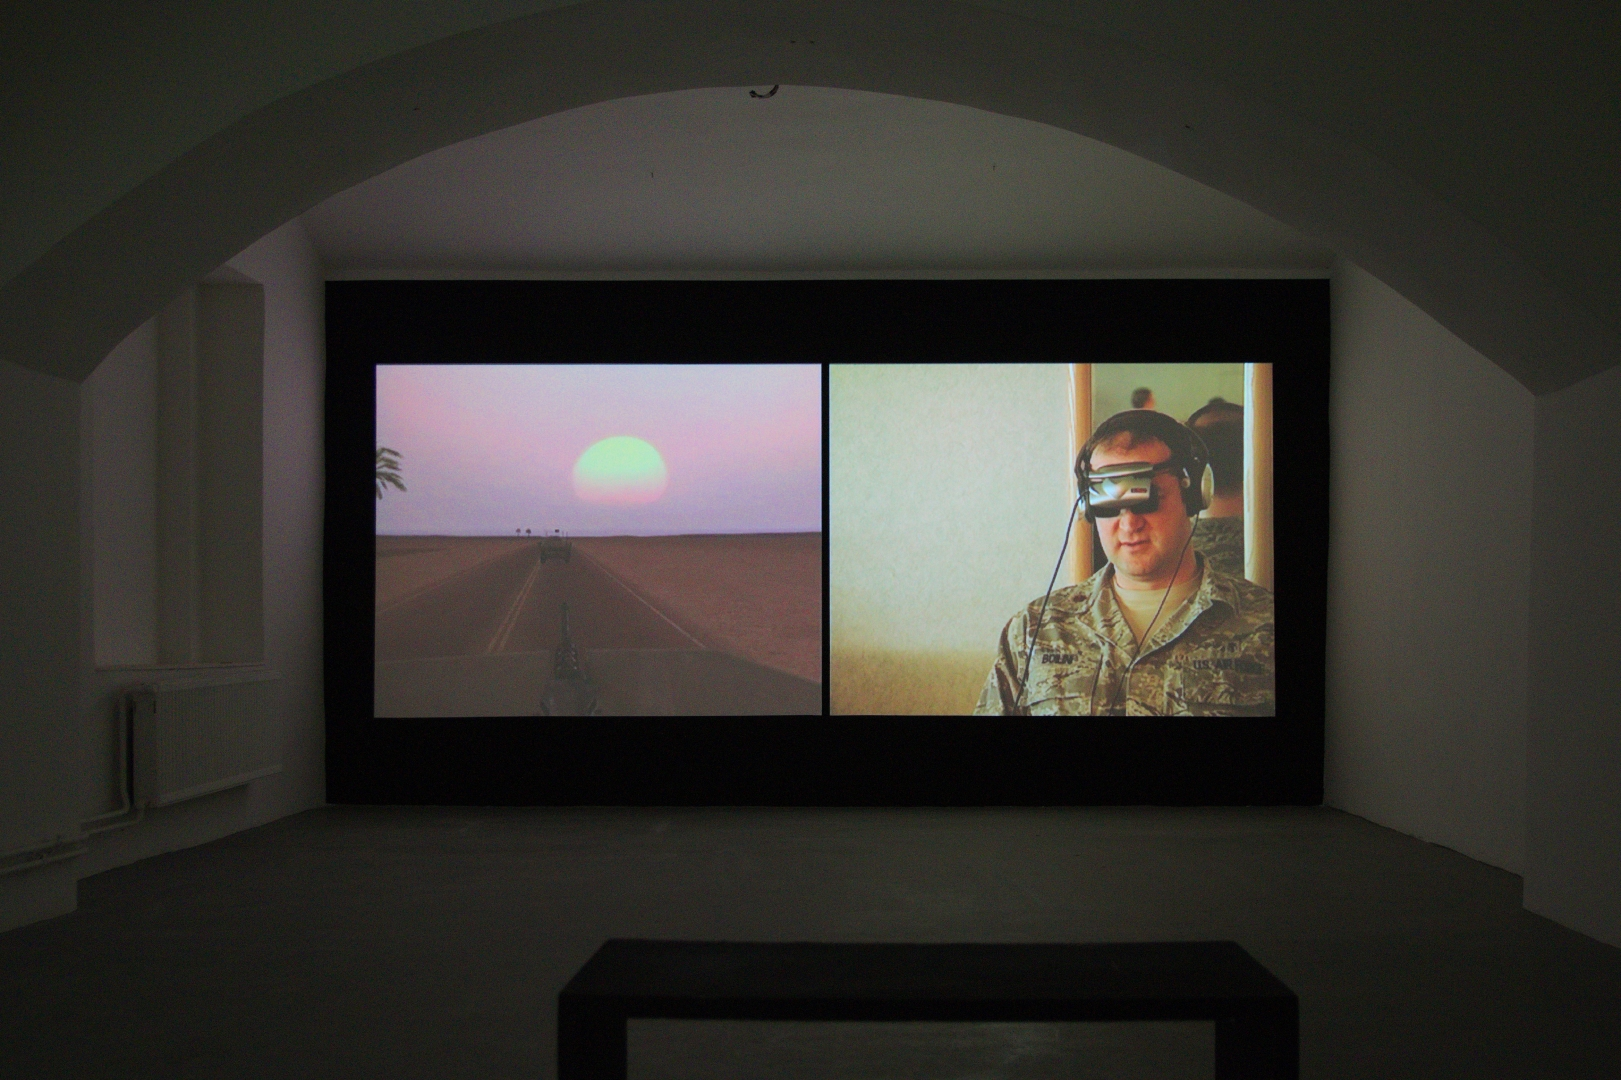 Harun Farocki / Serious Games. Immersion, 2009-2010